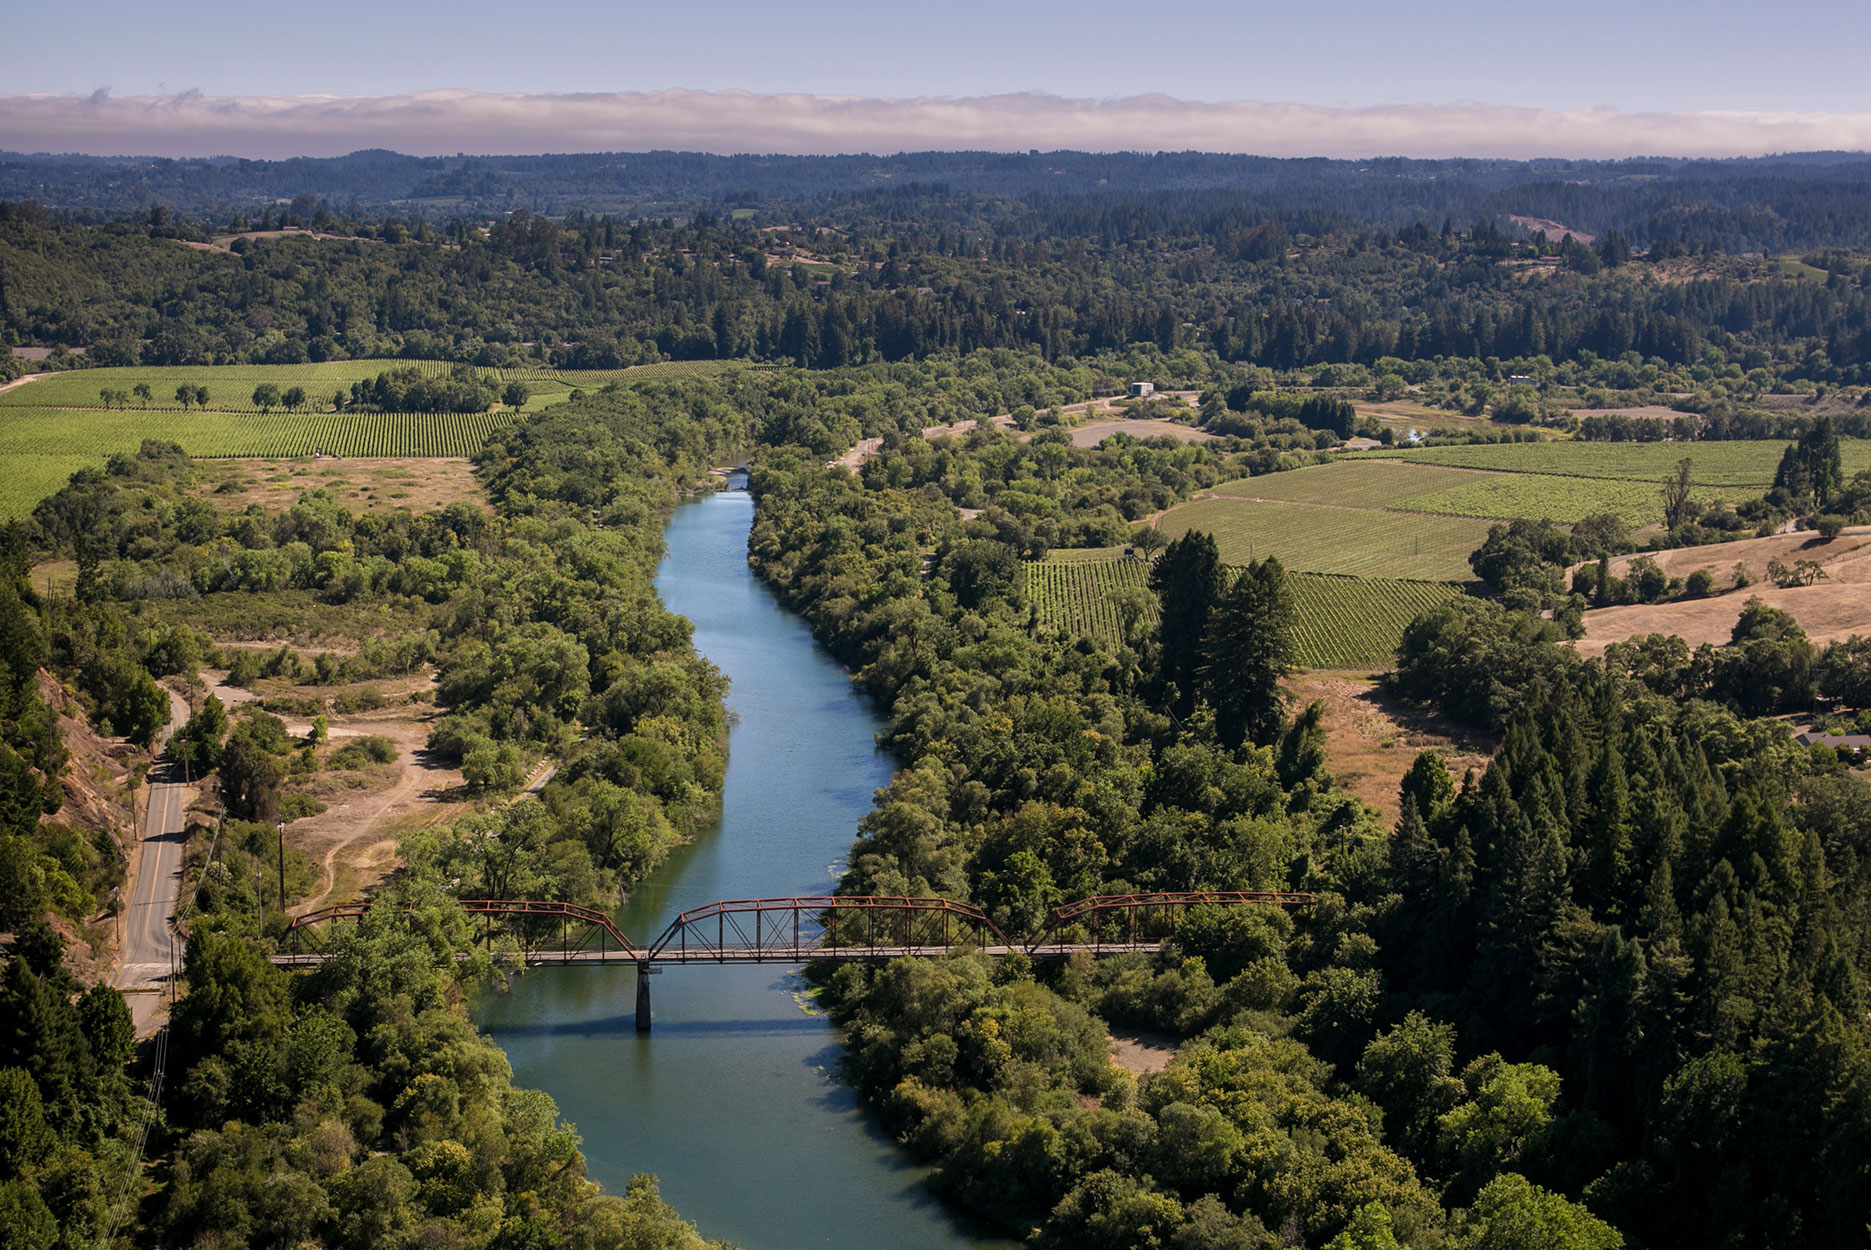 The Russian River in Sonoma county